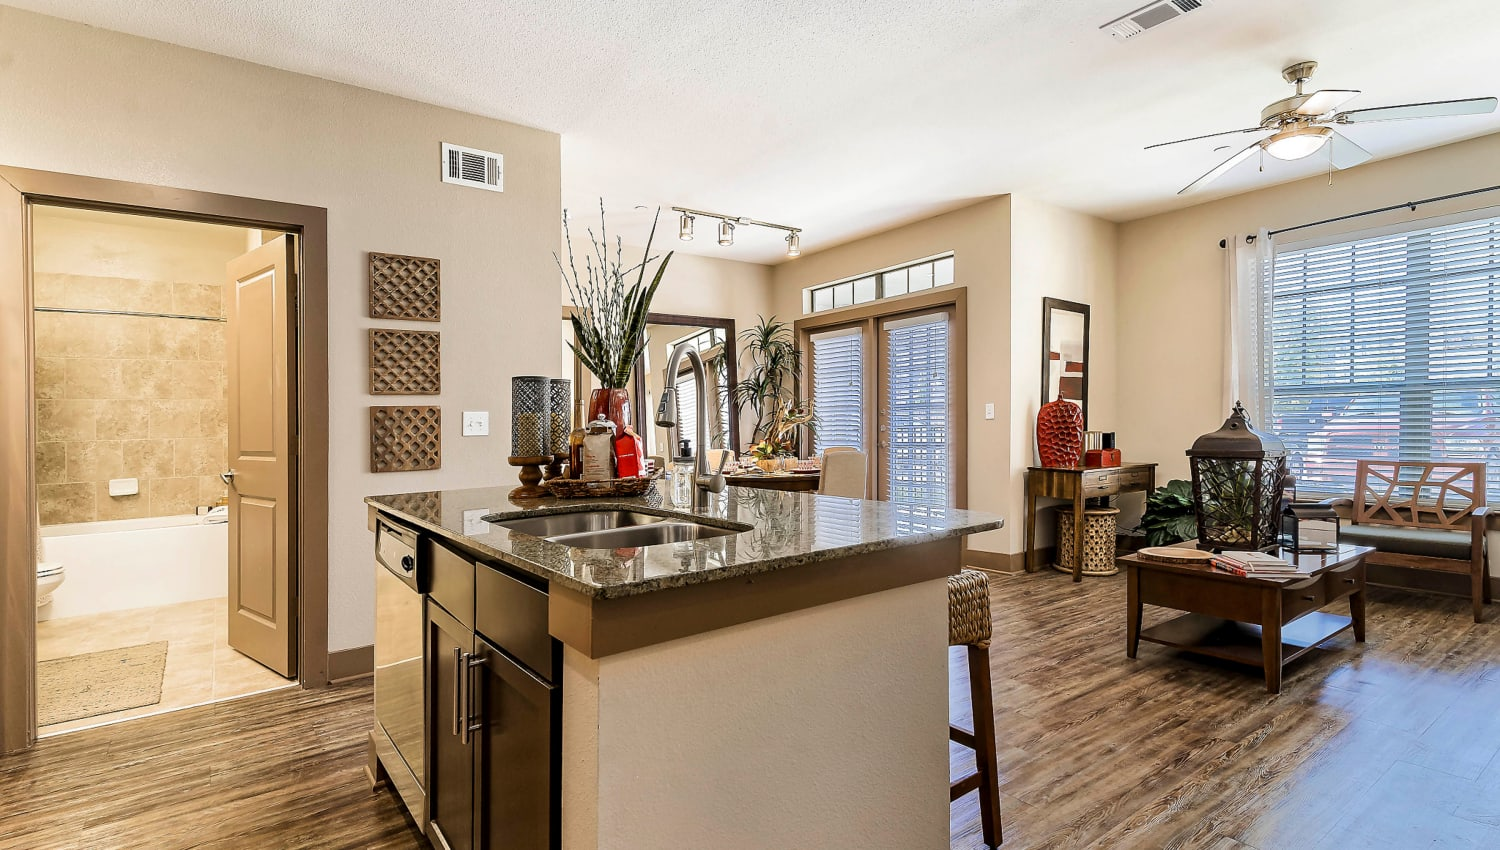 Kitchen with an island and bar seating in a model home at Sedona Ranch in Odessa, Texas